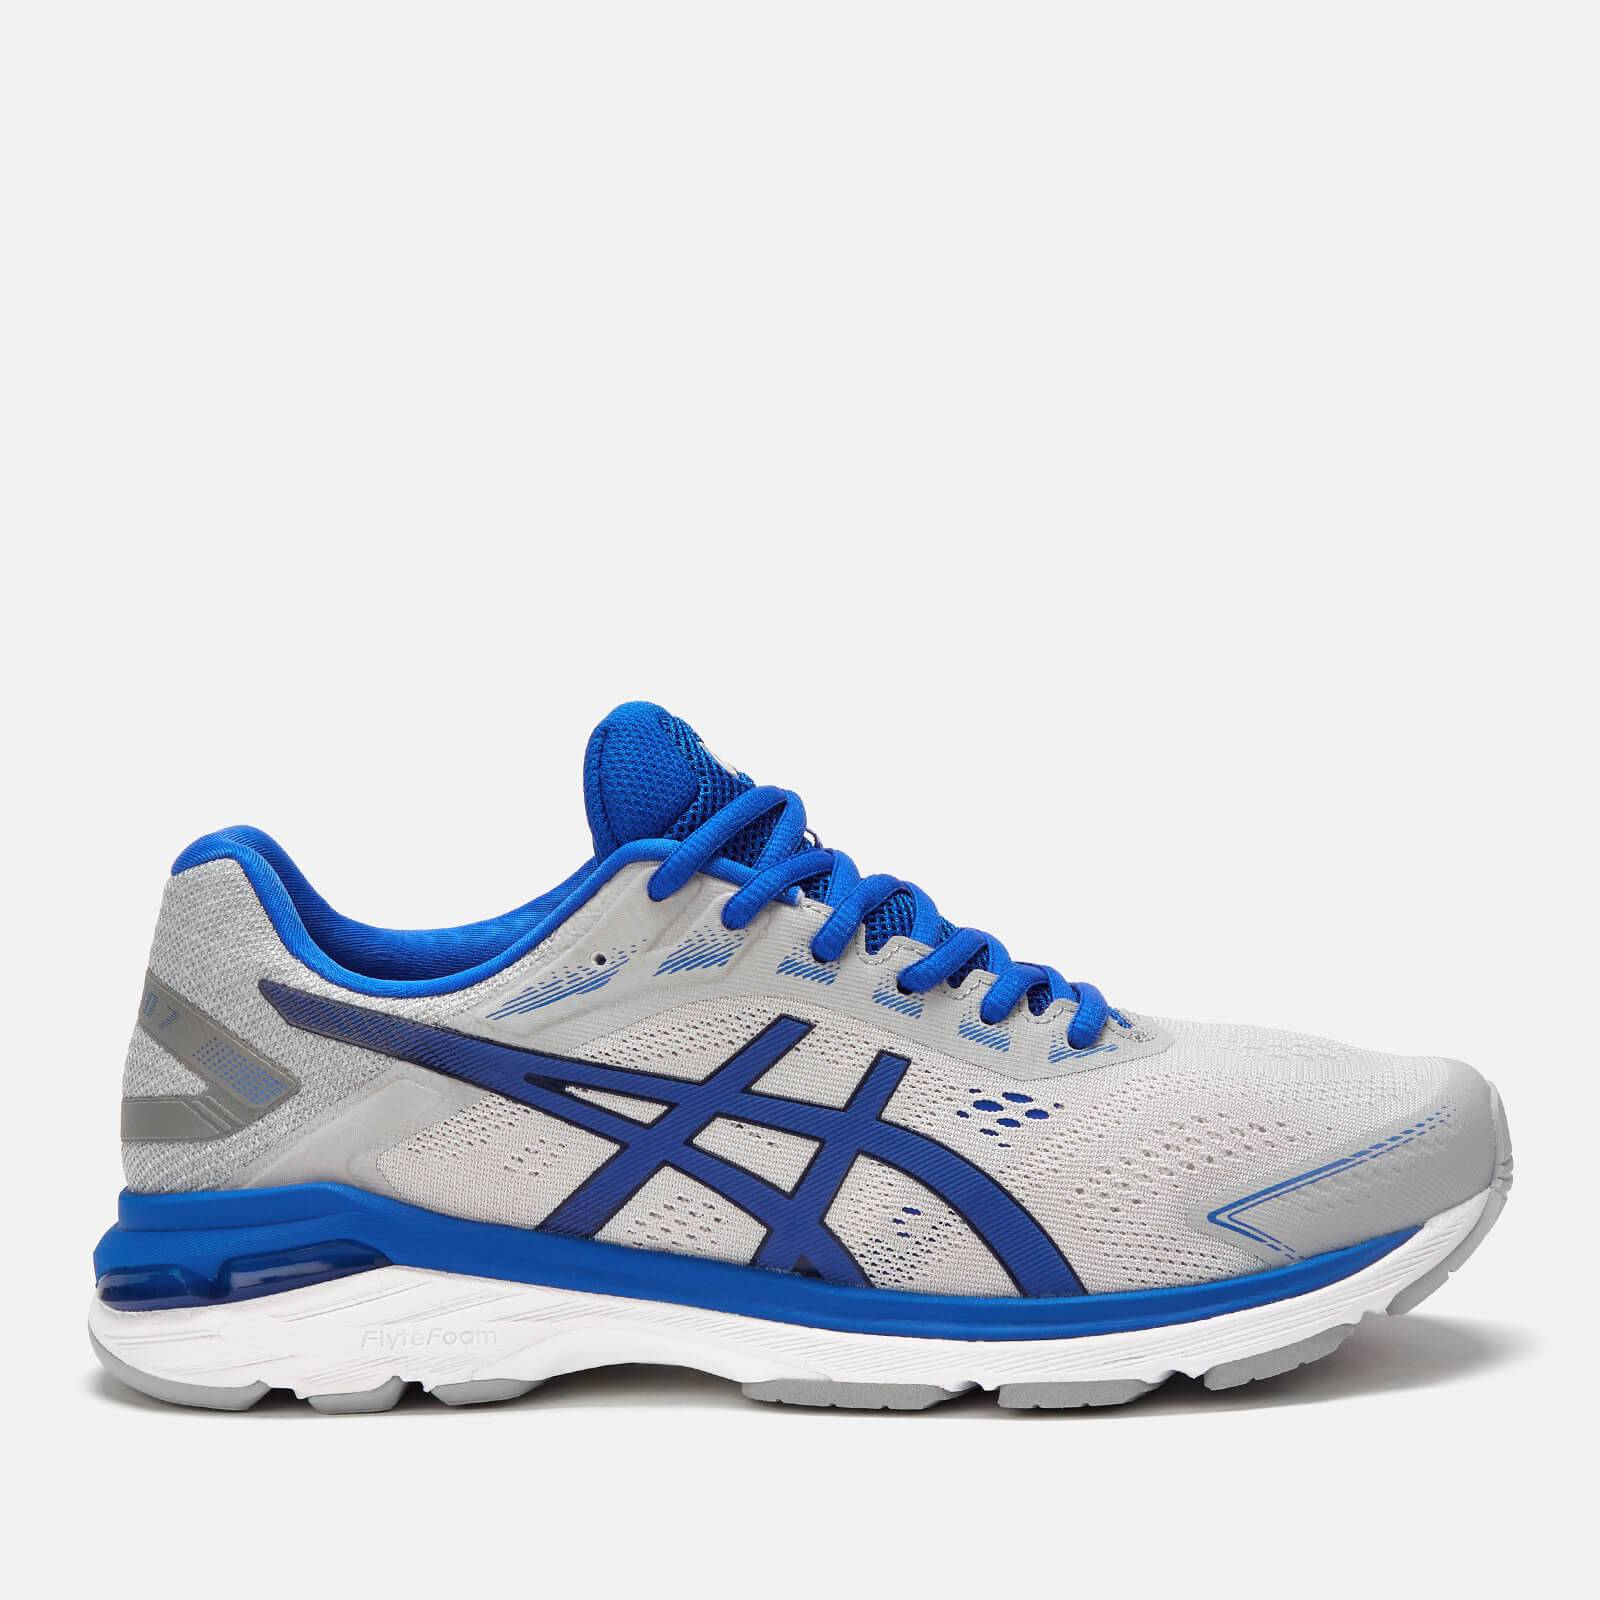 Asics Men's Running Gt-2000 7 Lite Show Trainers - Mid Grey/Illusion Blue - UK 8.5 - Grey